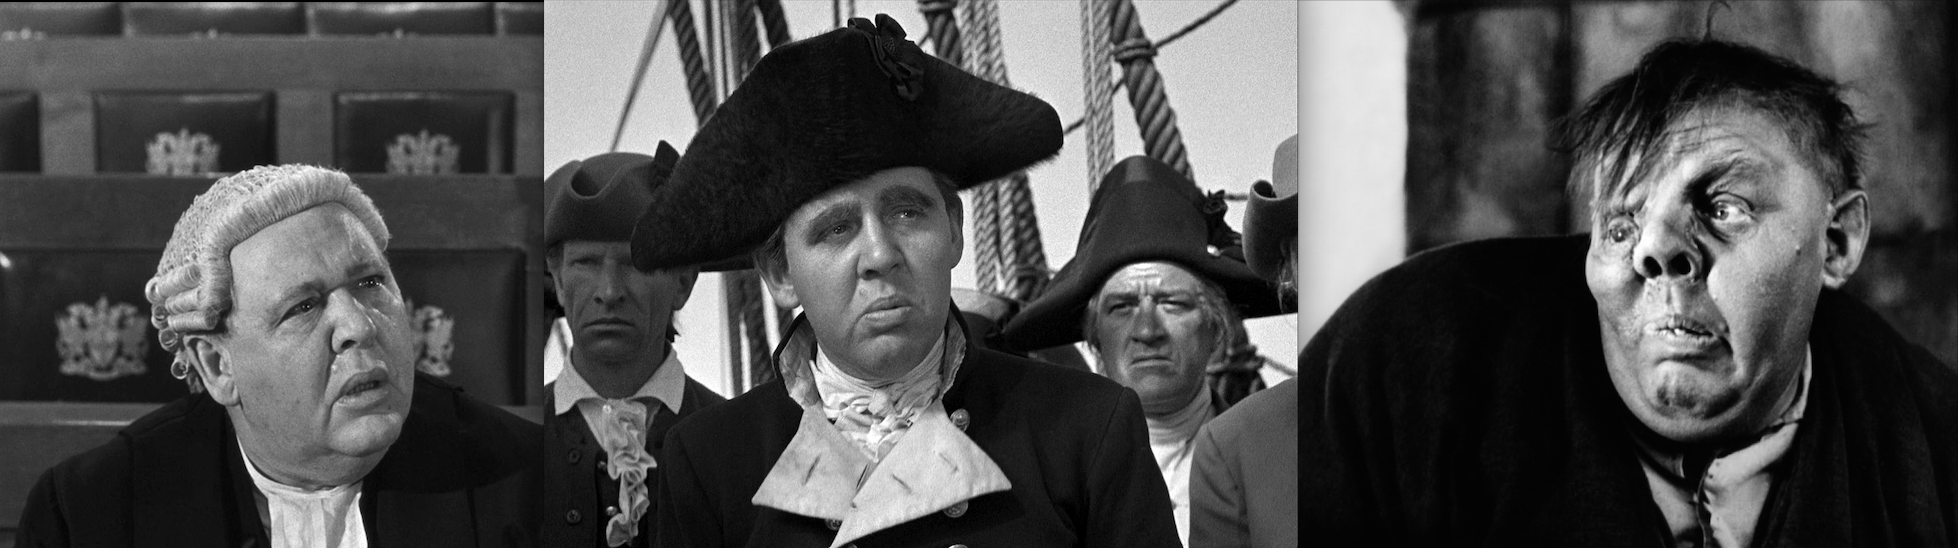 Charles Laughton, director of Night of the Hunter